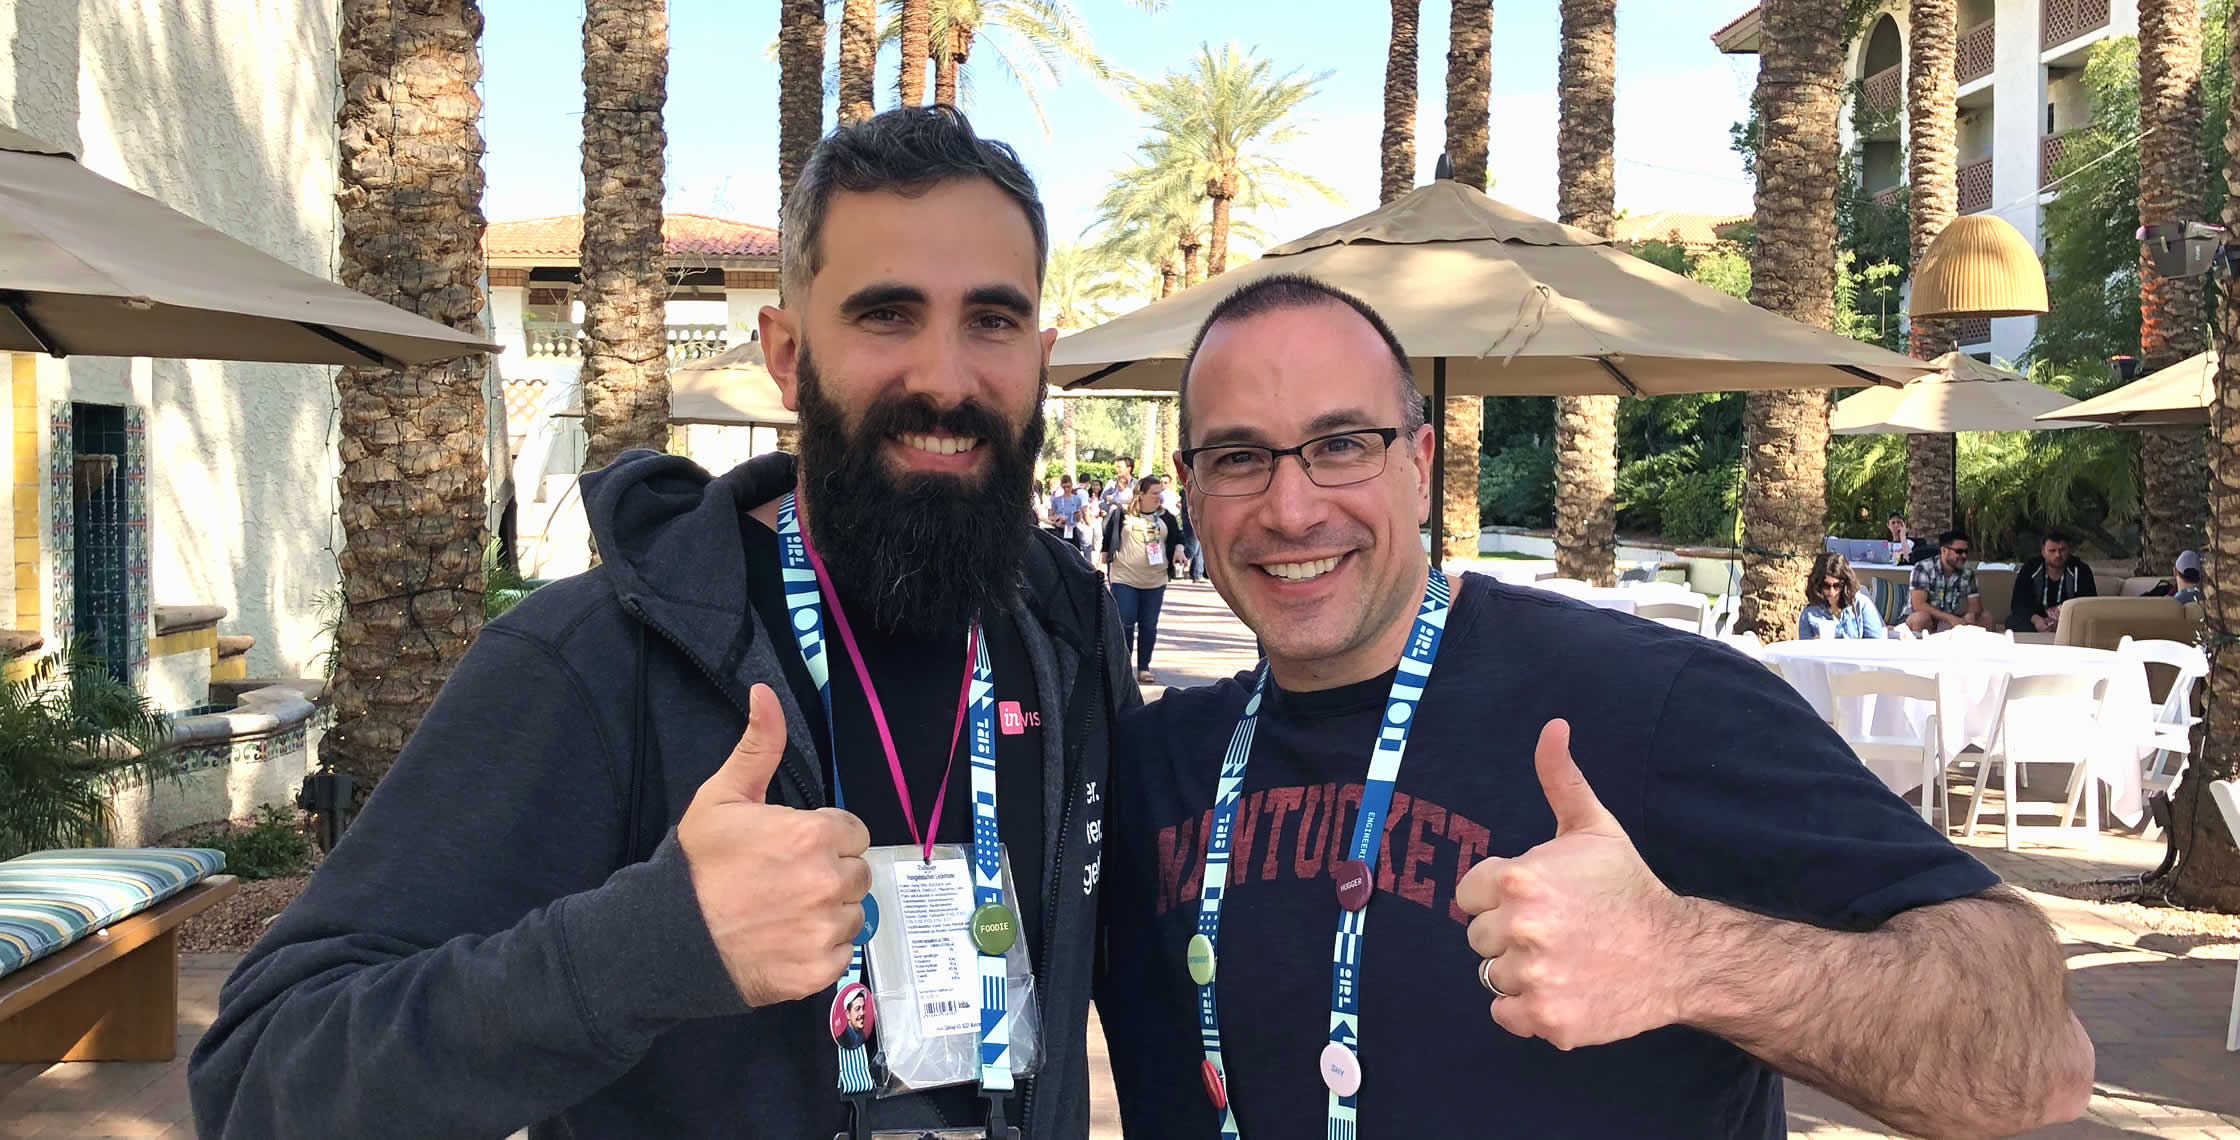 Ben Nadel at InVision In Real Life (IRL) 2019 (Phoenix, AZ) with: Matt Borgato